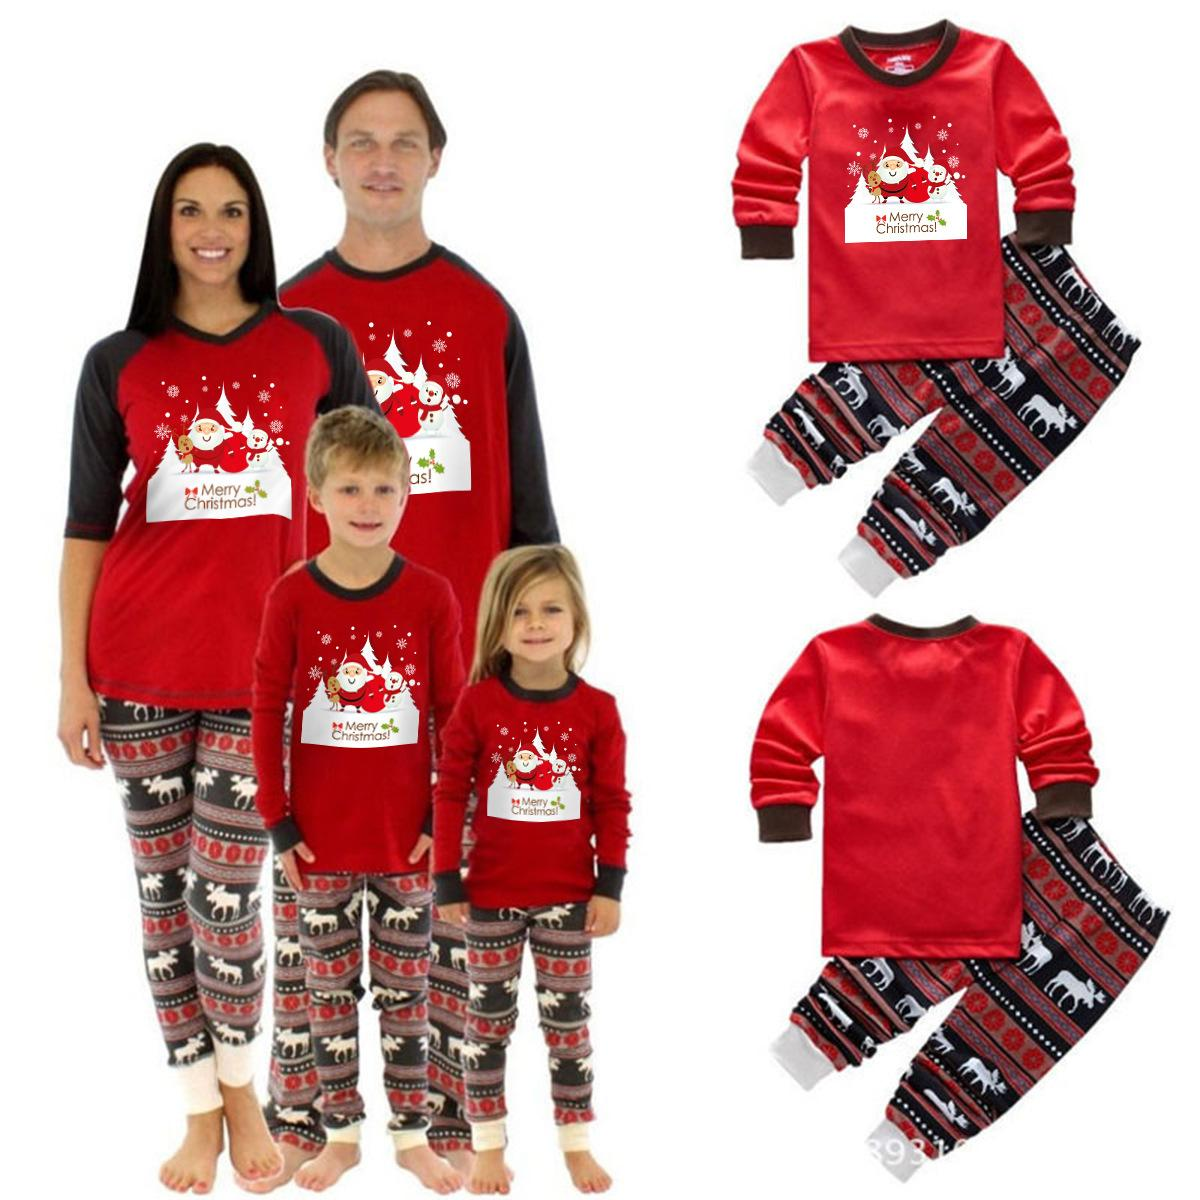 ce05549ced58 Xmas Moose Fairy Family Pajamas Sets Christmas Deer Elk Adult Children  Sleepwear Striped Nightwear Photgraphy Prop Party Clothing Homewears  Costumes For ...